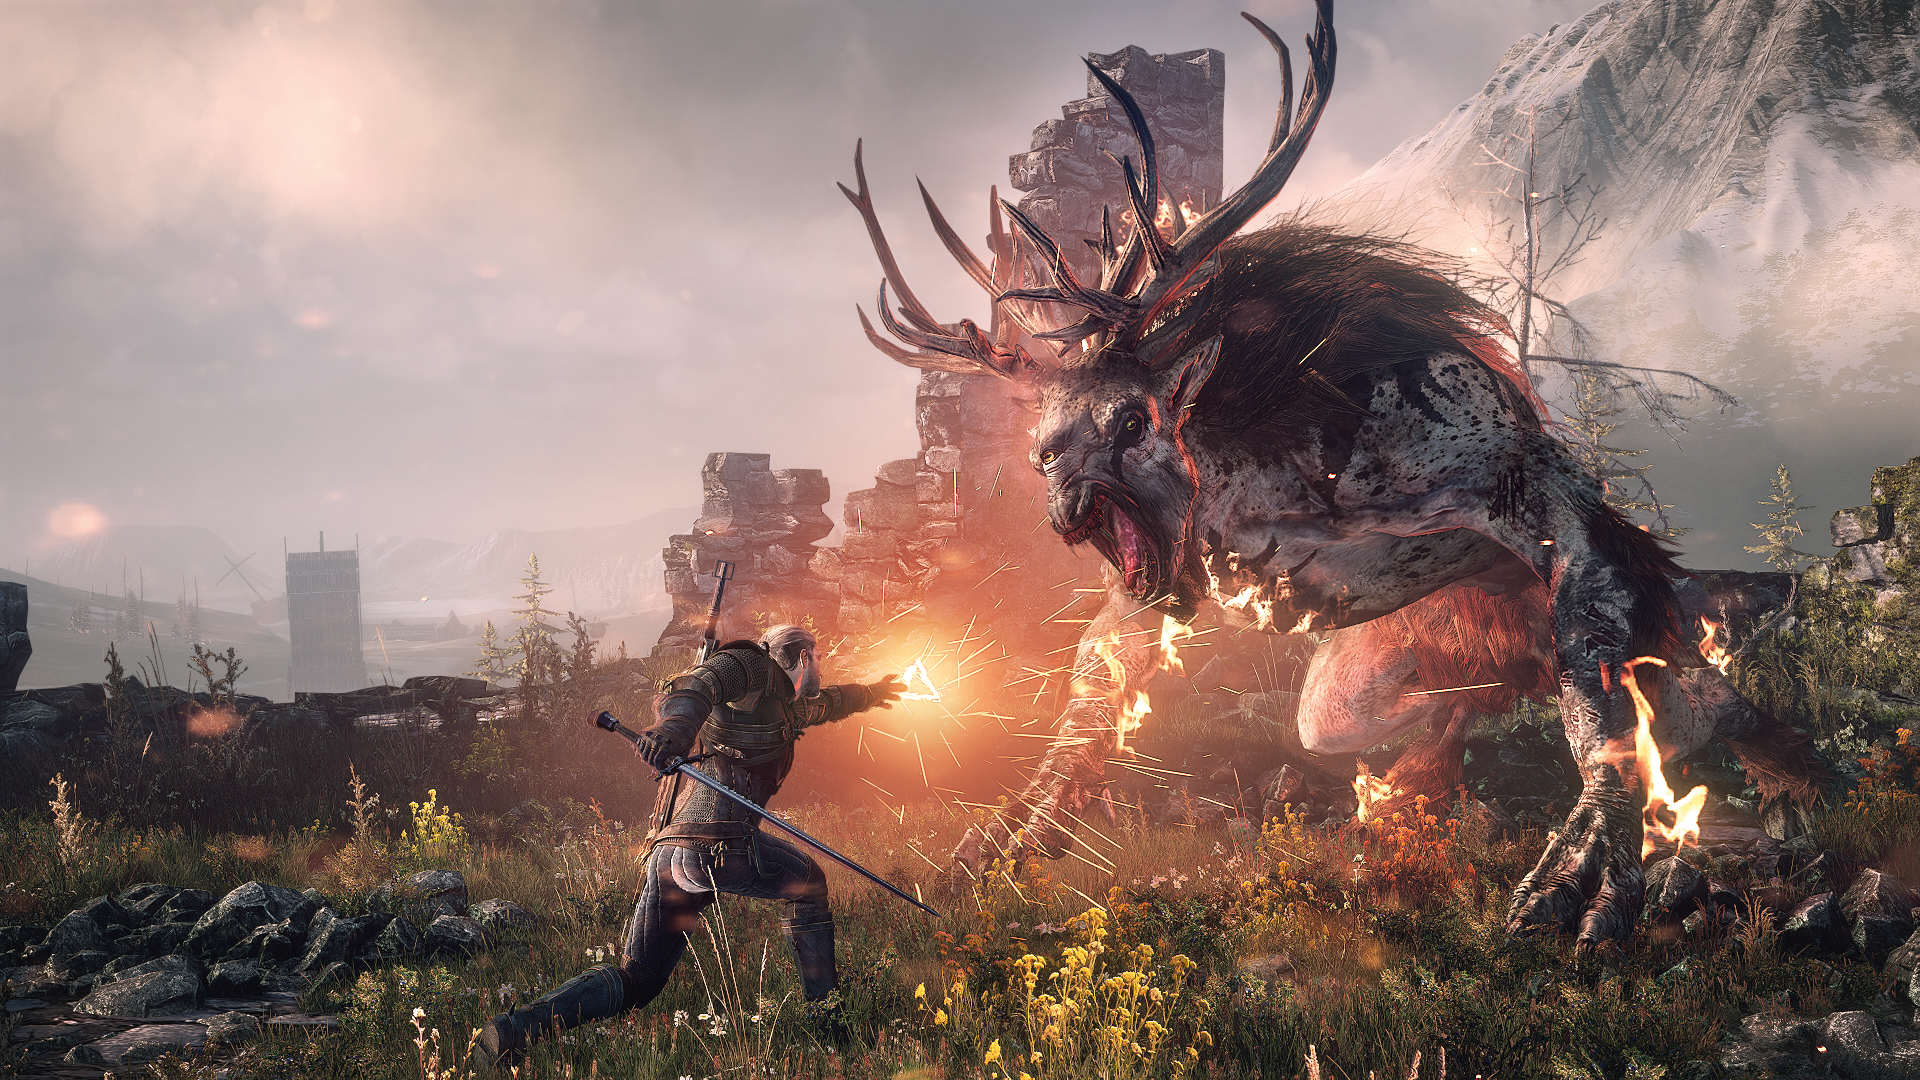 Witcher Series Future Dealt Massive Blow By Devs 2457637 the witcher 3 wild hunt geralt vs fiend